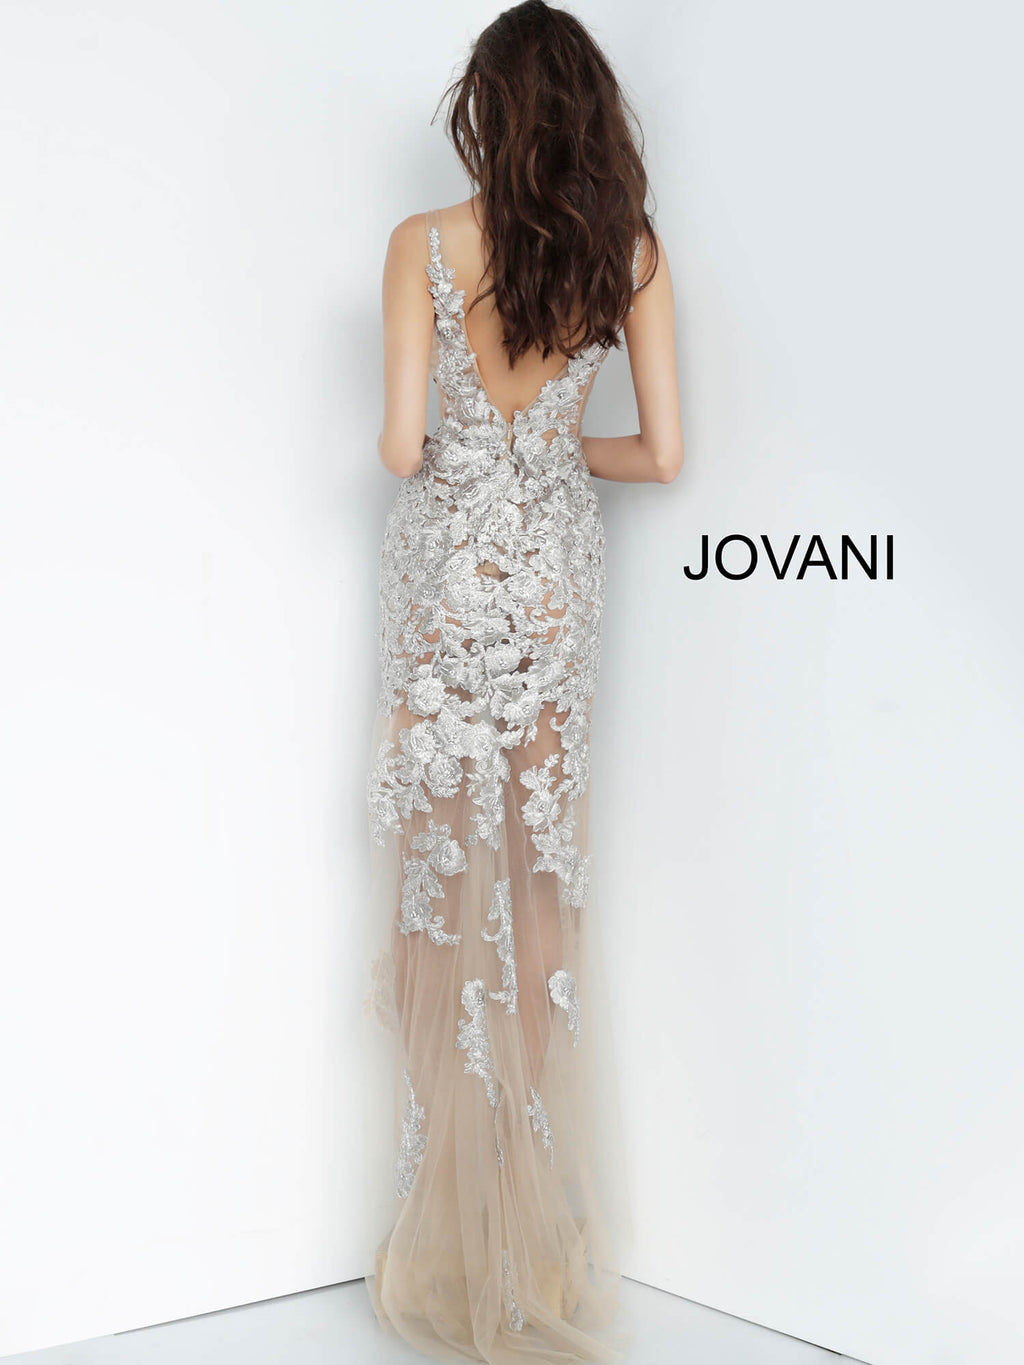 JOVANI 4083 Plunging V-Neck Evening Dress